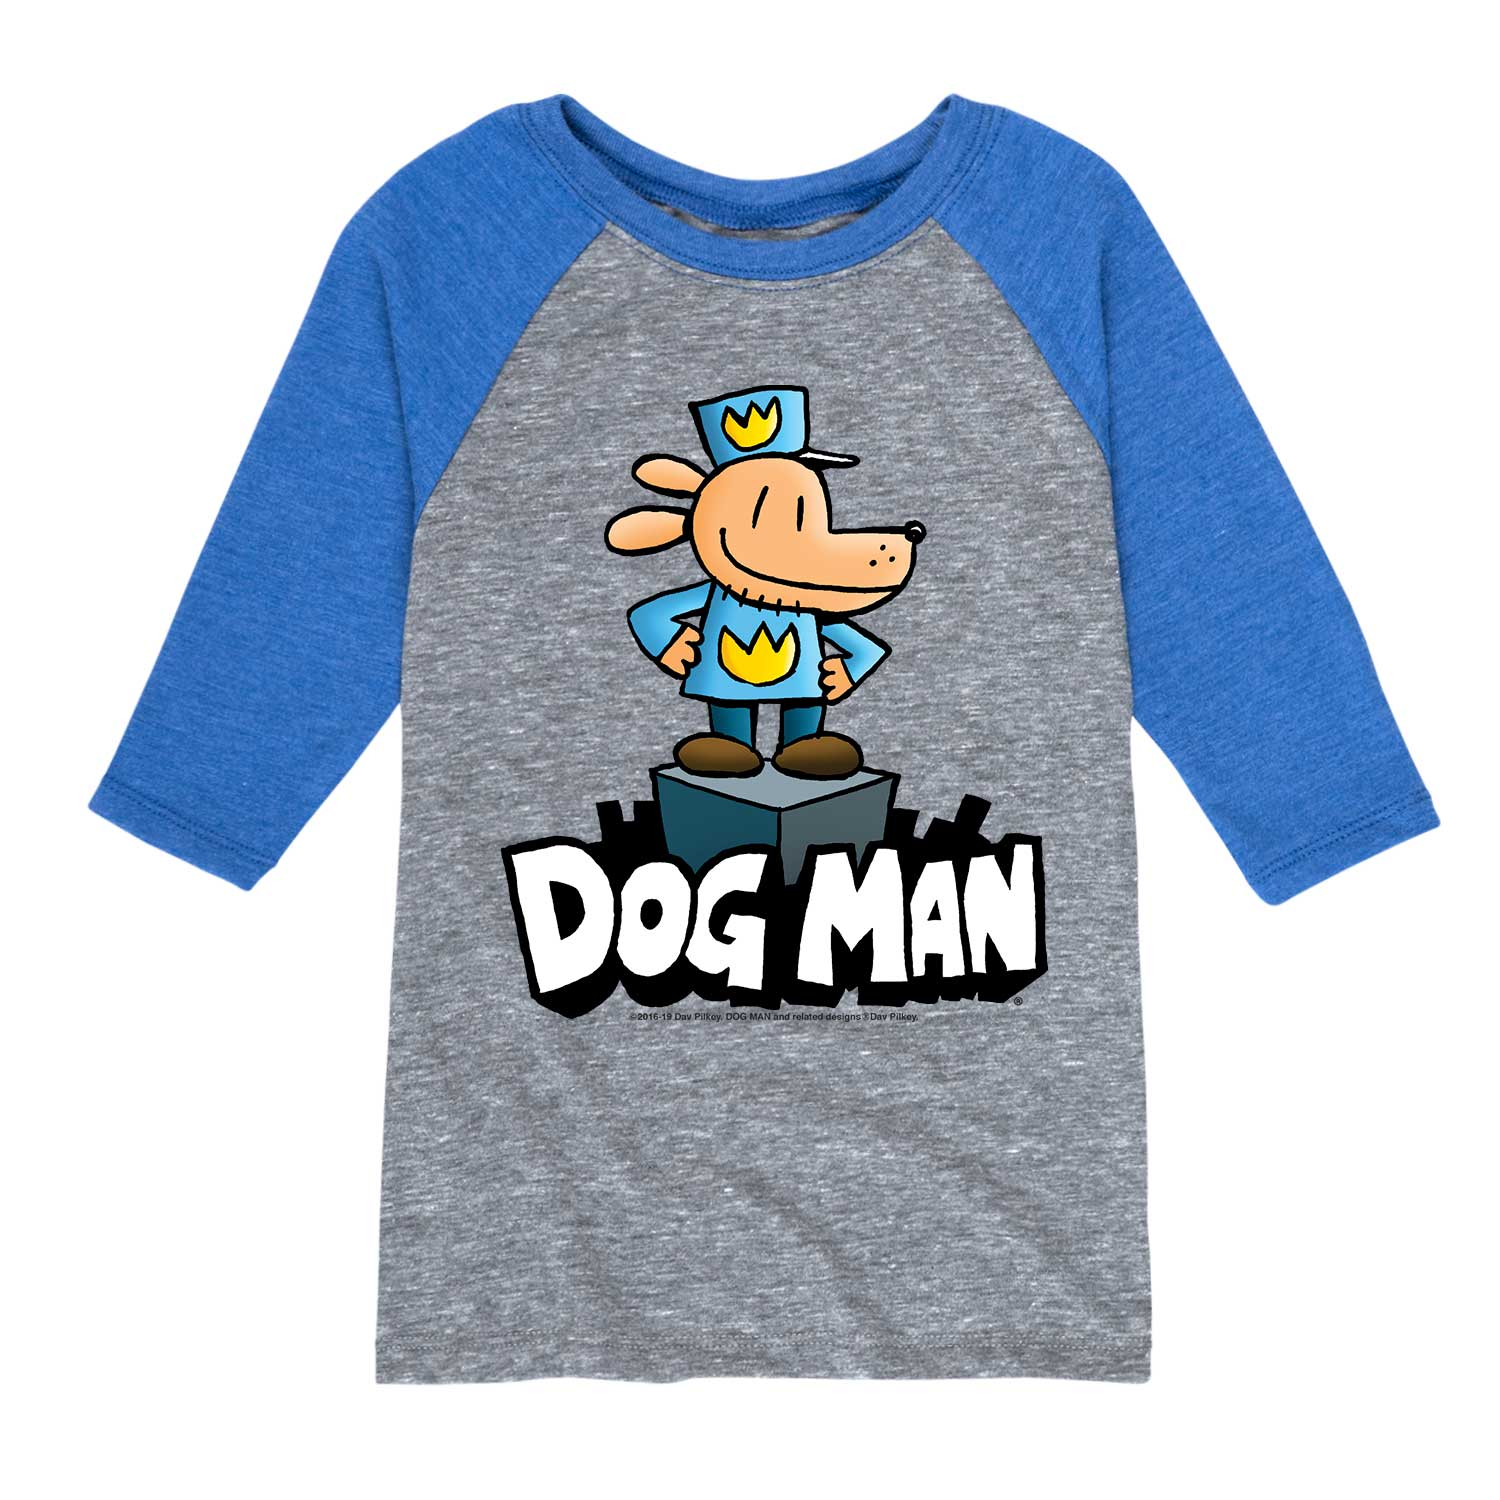 Dog Man On Pedestal - Youth & Toddler Raglan